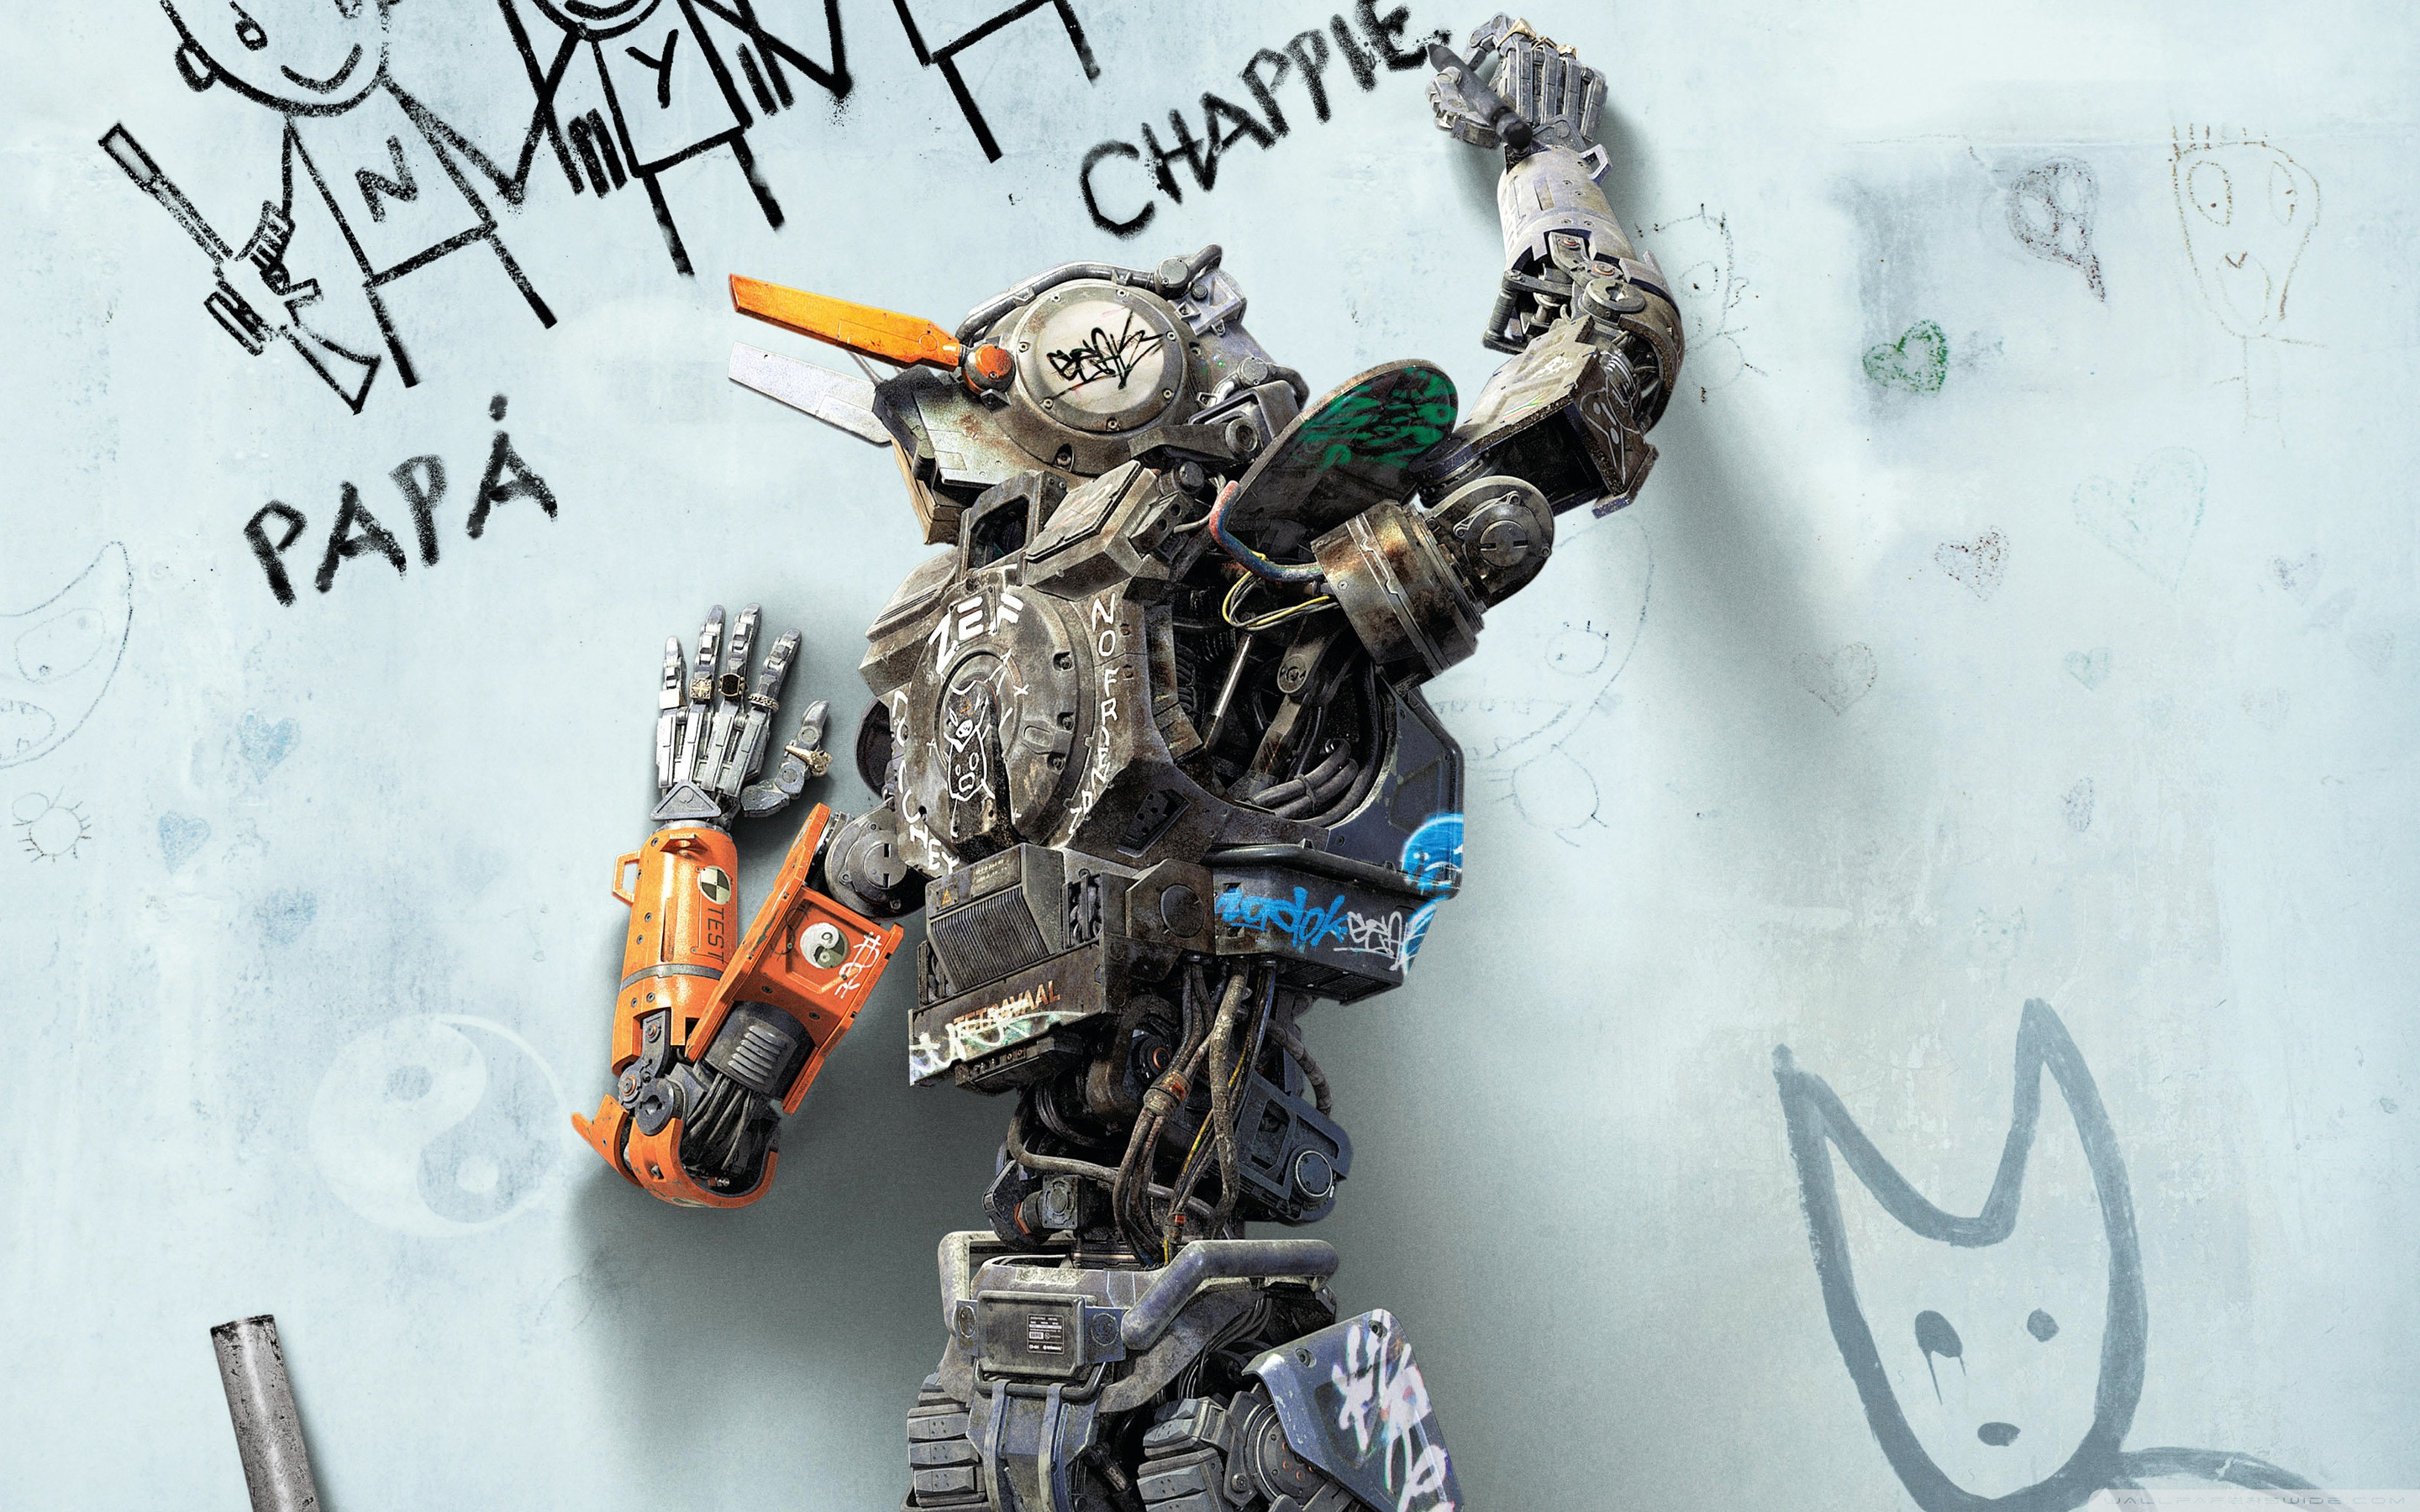 Chappie Wallpapers and Background Images   stmednet 2880x1800